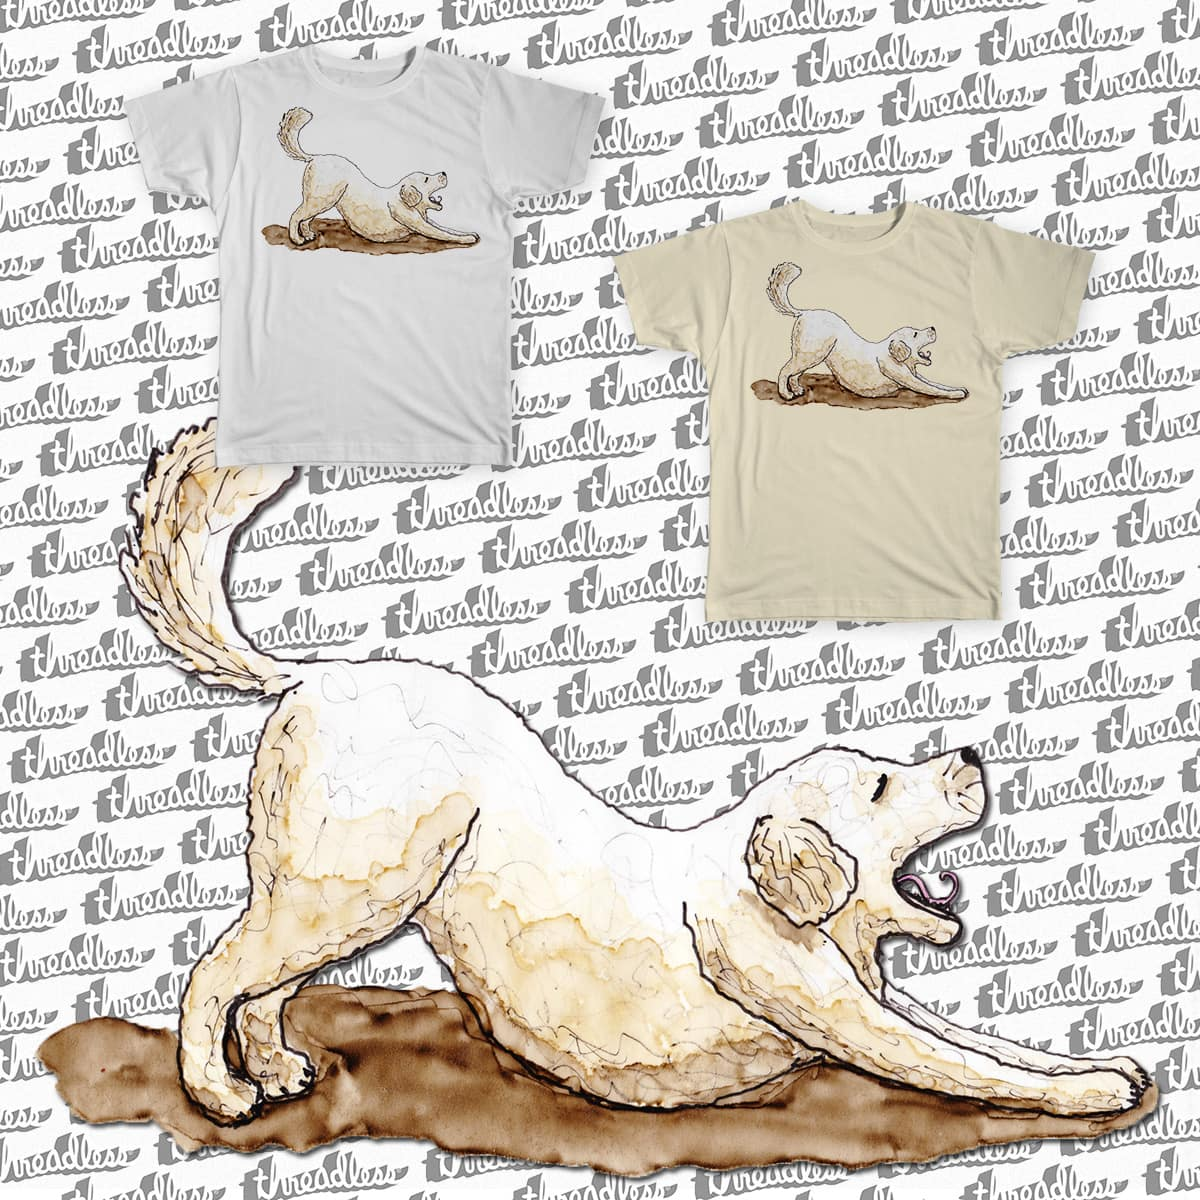 My Dog is into Yoga by nathanaelscheffler on Threadless